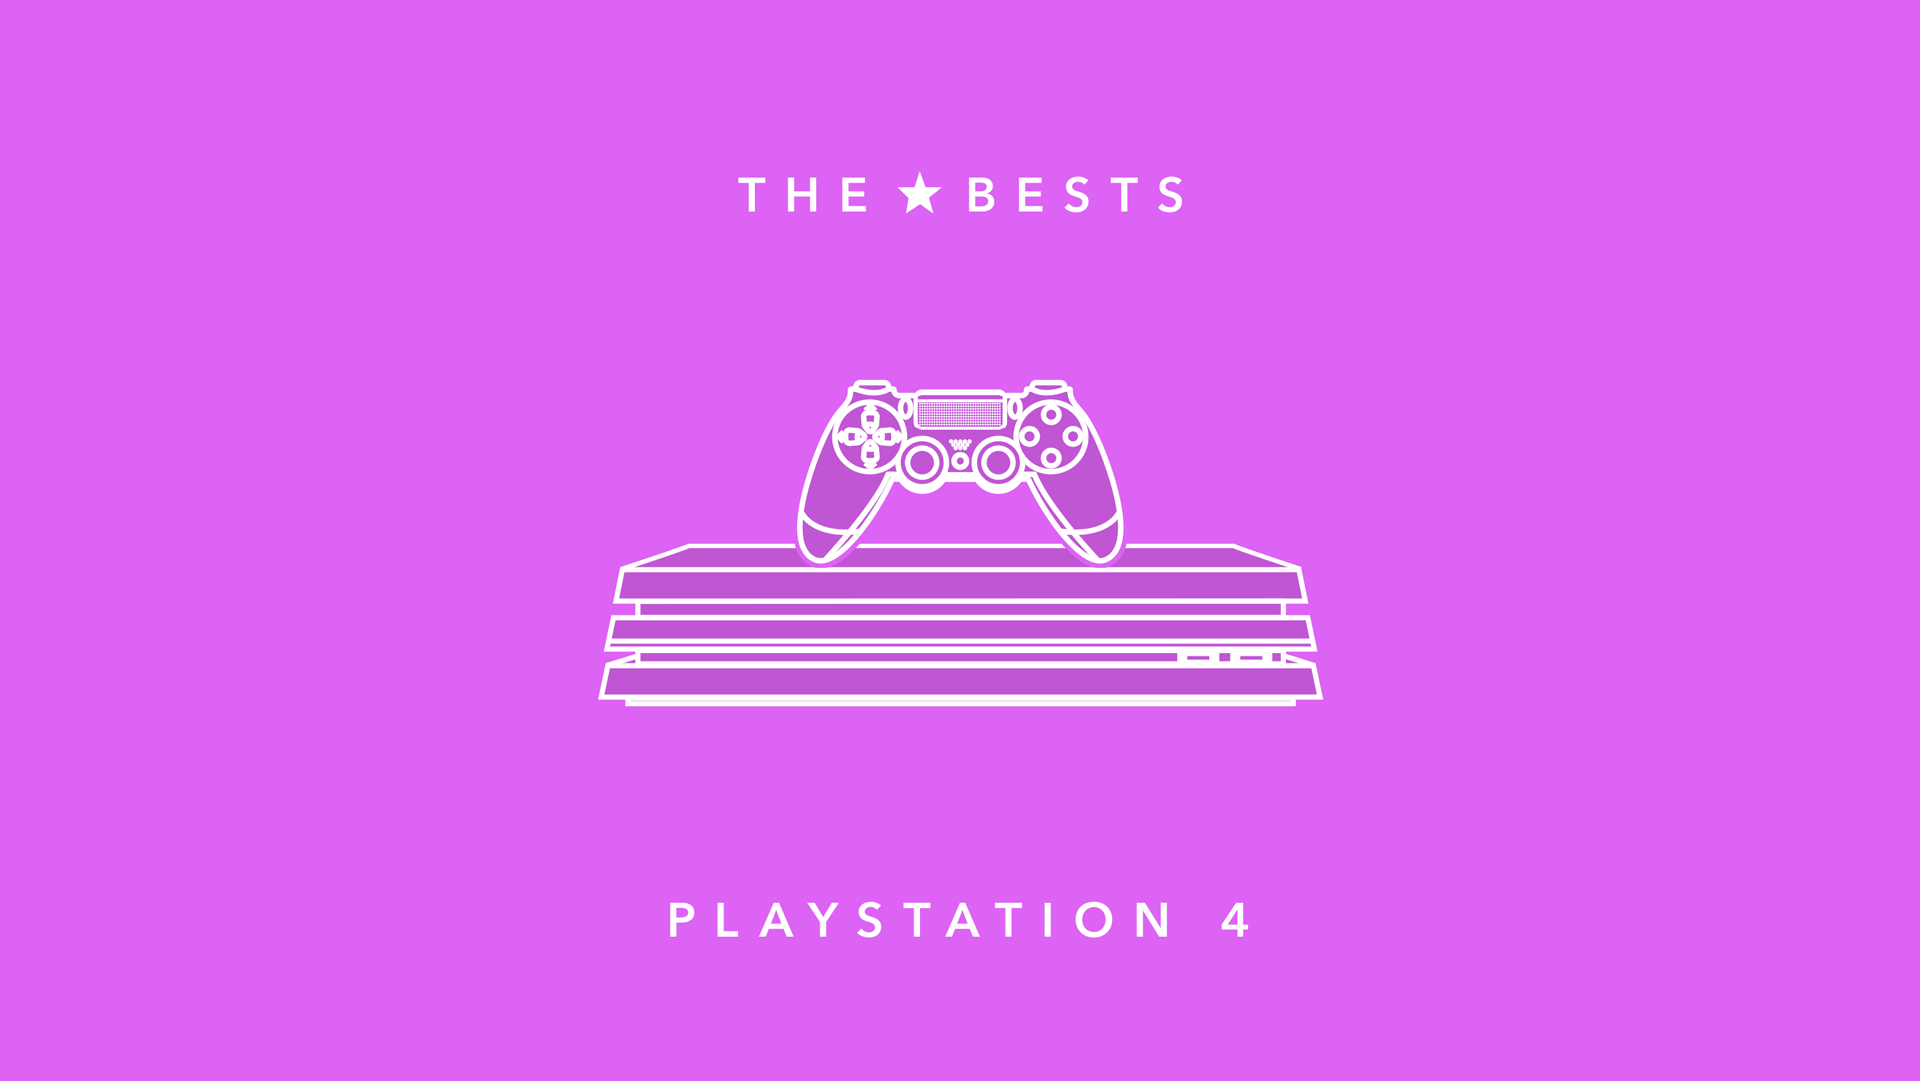 The 12 Best Games For The PlayStation 4